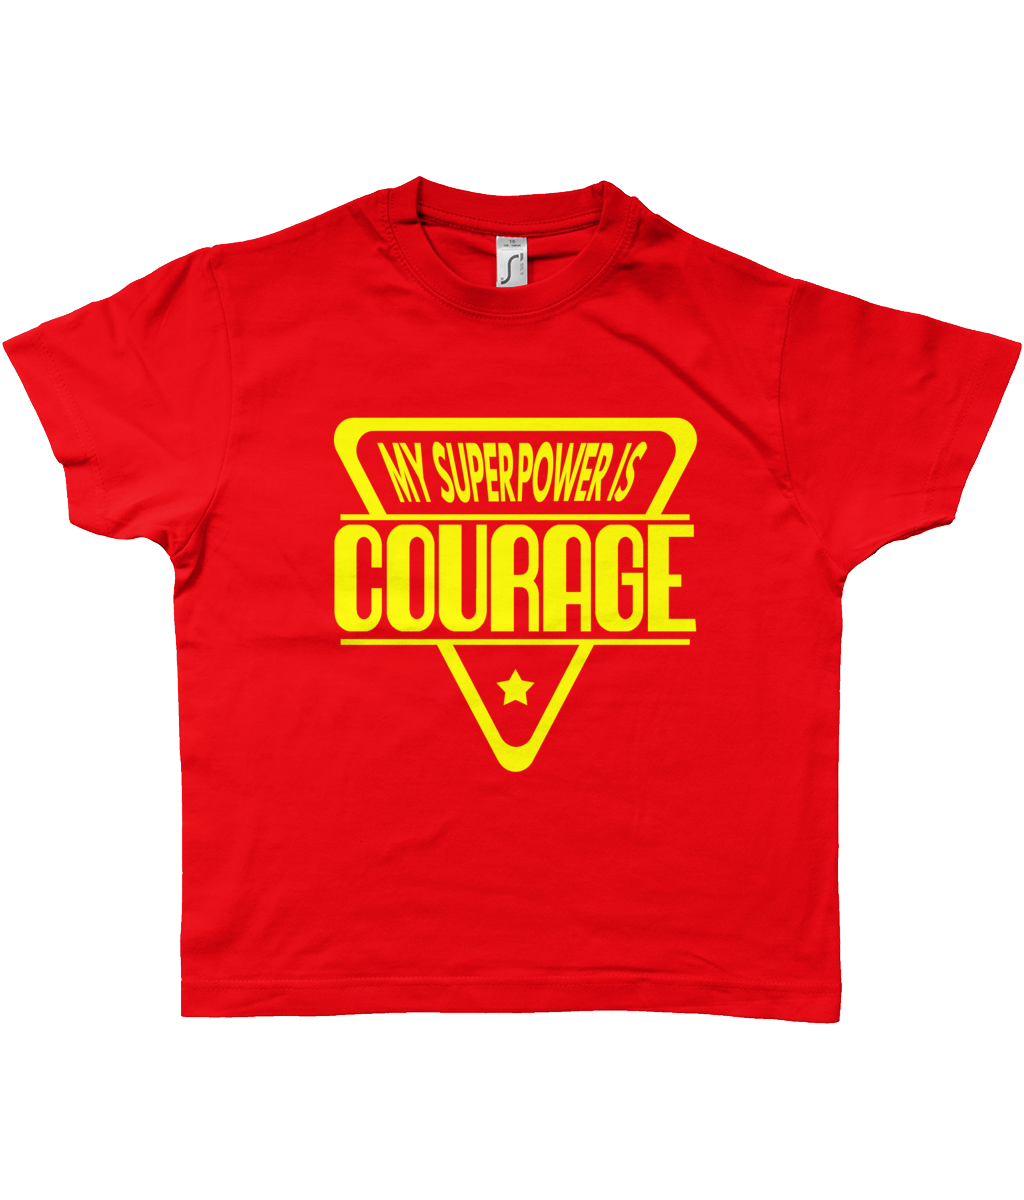 Kid's Red Superpower Courage T-Shirt Red